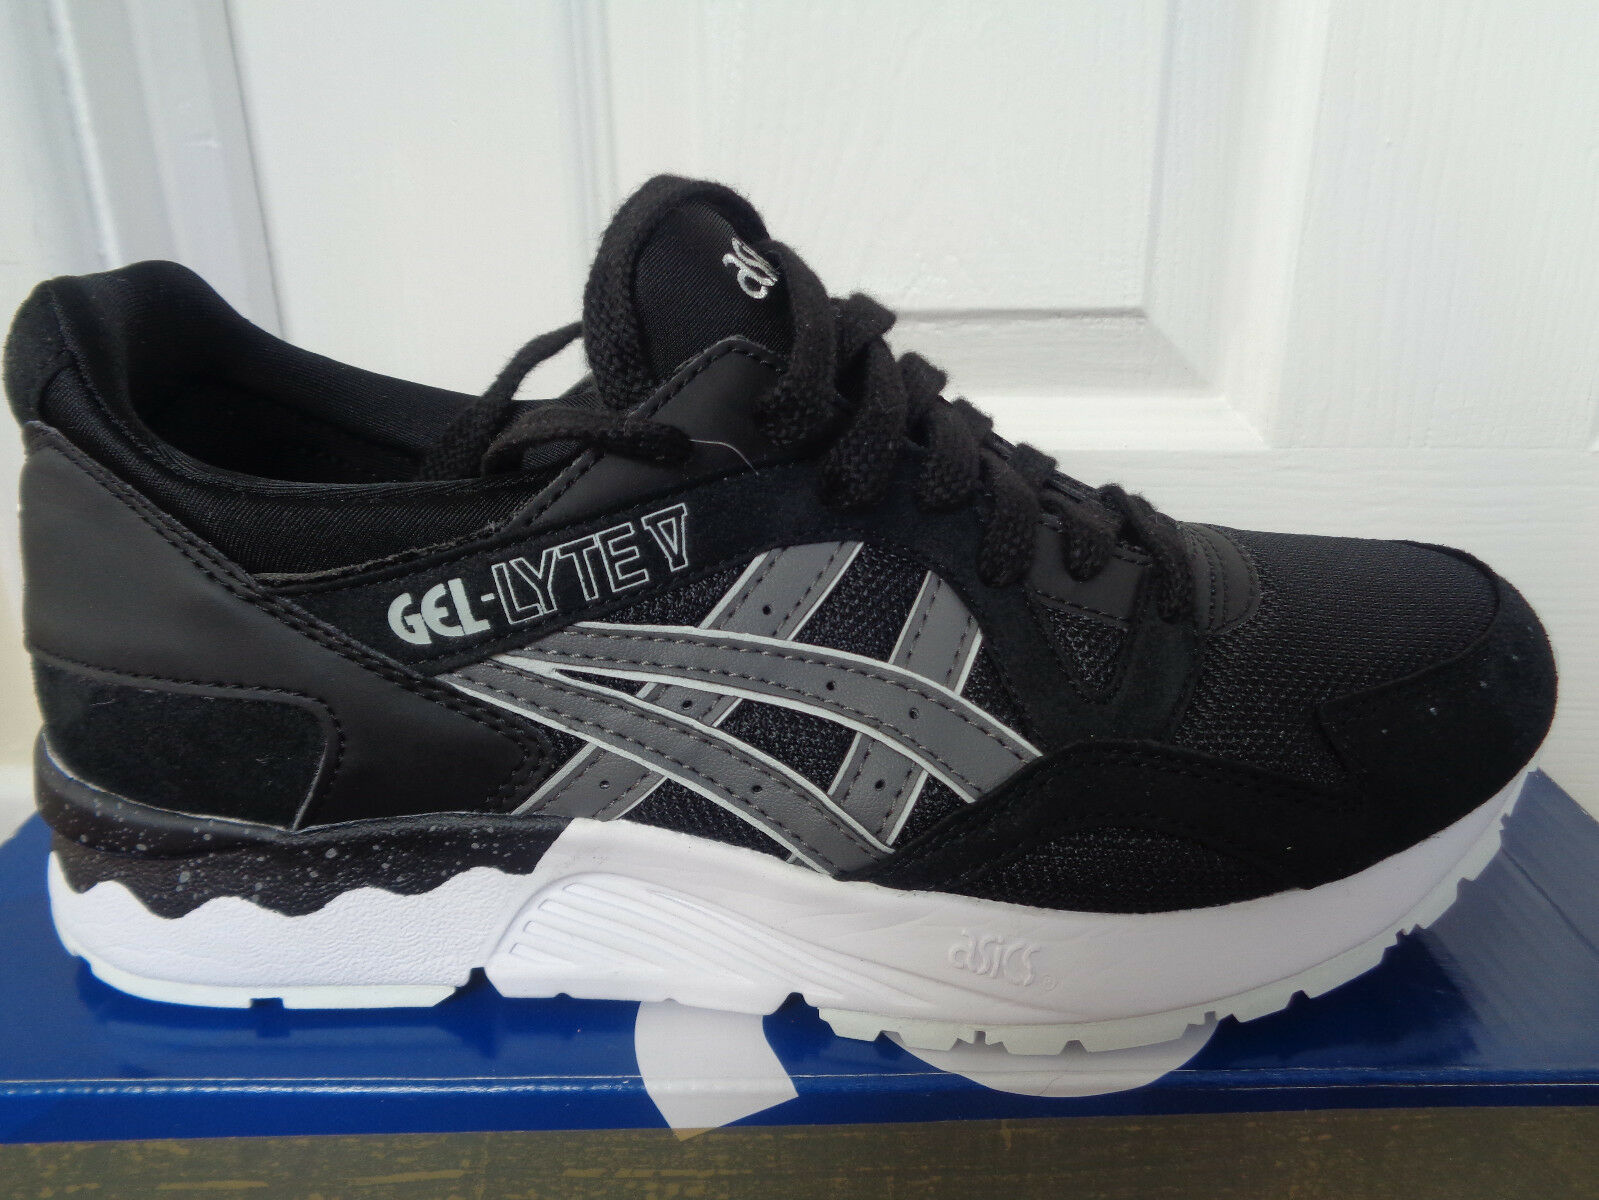 Asics Gel Lyte V mens trainers sneakers HN6A4 9011 eu 40 us 7 NEW+BOX